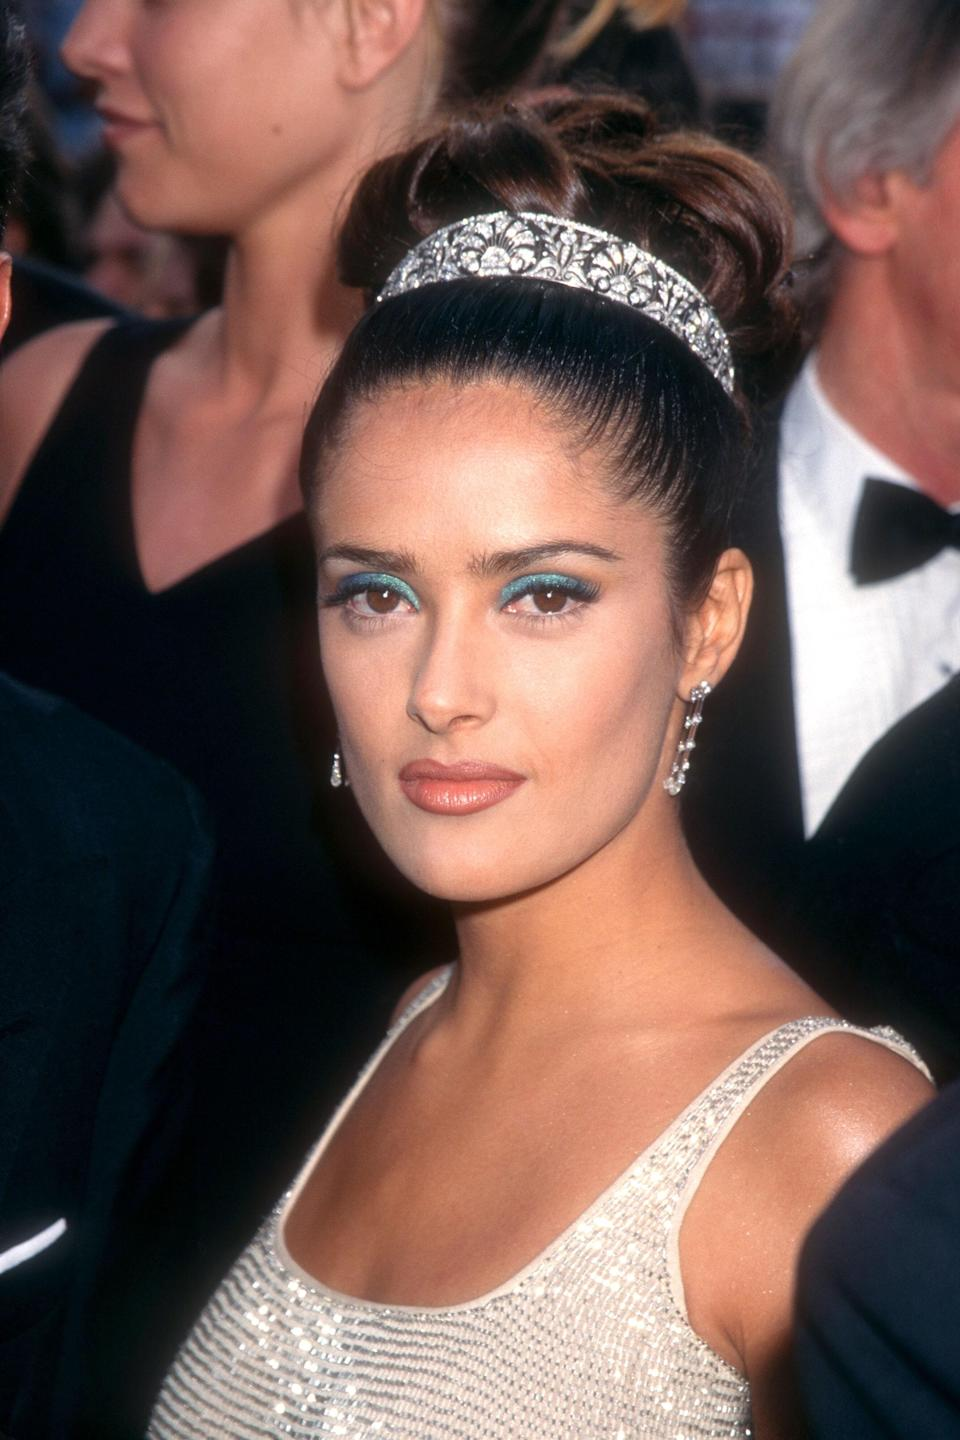 """It just takes one person to start a trend, and when Salma Hayek arrived at the Oscars in a diamond tiara, it kick-started a revival in hair jewelry. """"Everybody told me that I was crazy and ridiculous, and it was going to be pretentious,"""" Hayek <a href=""""https://www.vogue.com/article/salma-hayek-life-in-looks-best-fashion-moments-video?mbid=synd_yahoo_rss"""" rel=""""nofollow noopener"""" target=""""_blank"""" data-ylk=""""slk:told Vogue earlier this year."""" class=""""link rapid-noclick-resp"""">told <em>Vogue</em> earlier this year.</a> """"I wore the tiara anyway, and you know what happened? Everybody started wearing a tiara after that."""""""